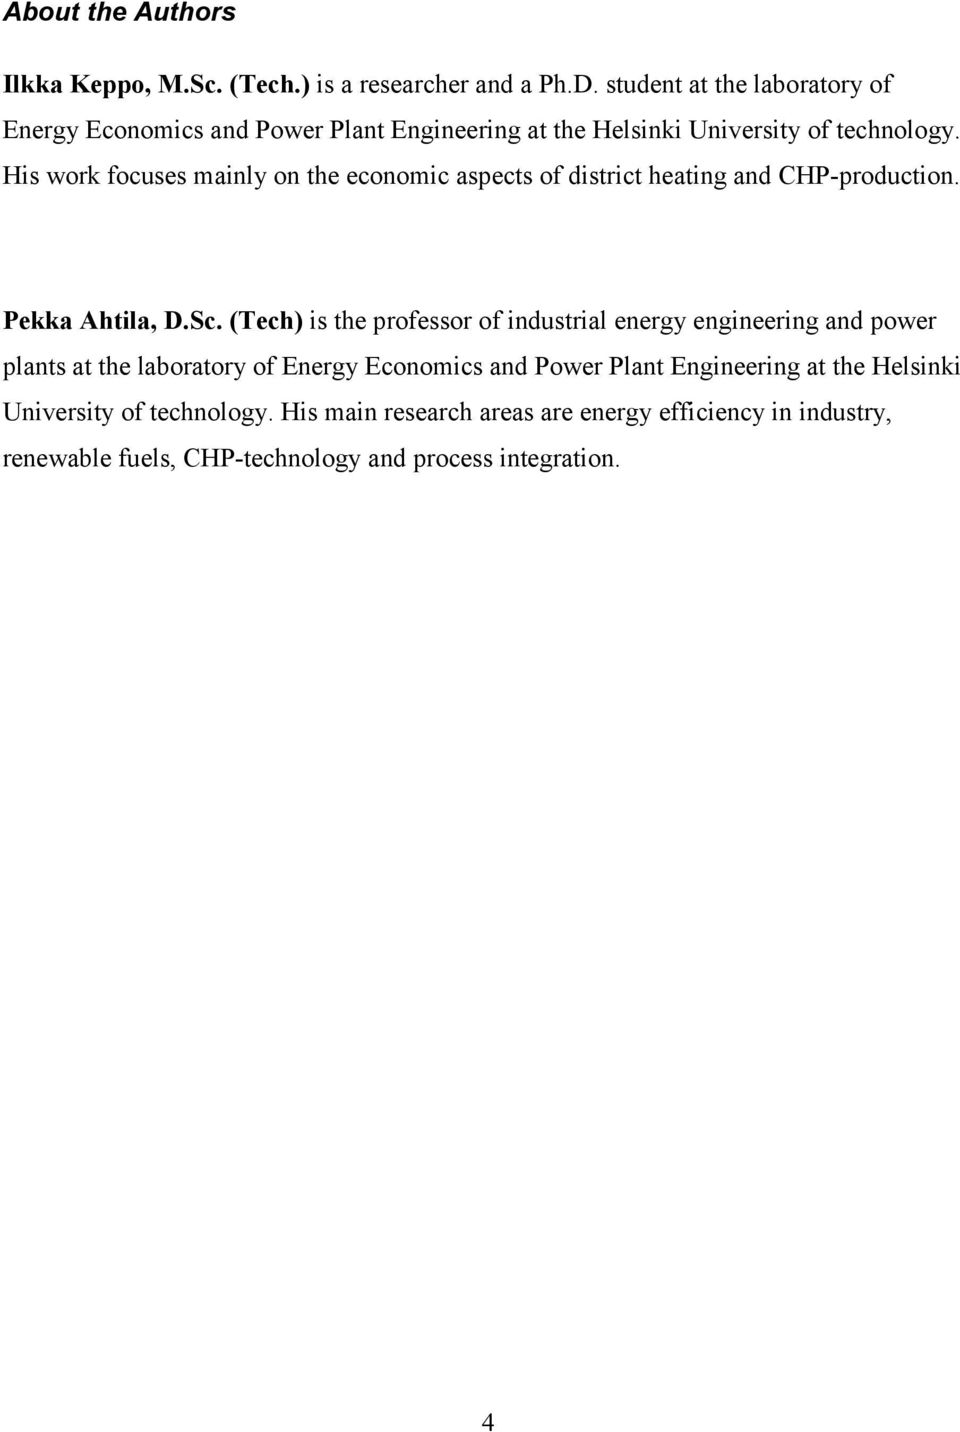 His work focuses mainly on the economic aspects of district heating and CHP-production. Pekka Ahtila, D.Sc.